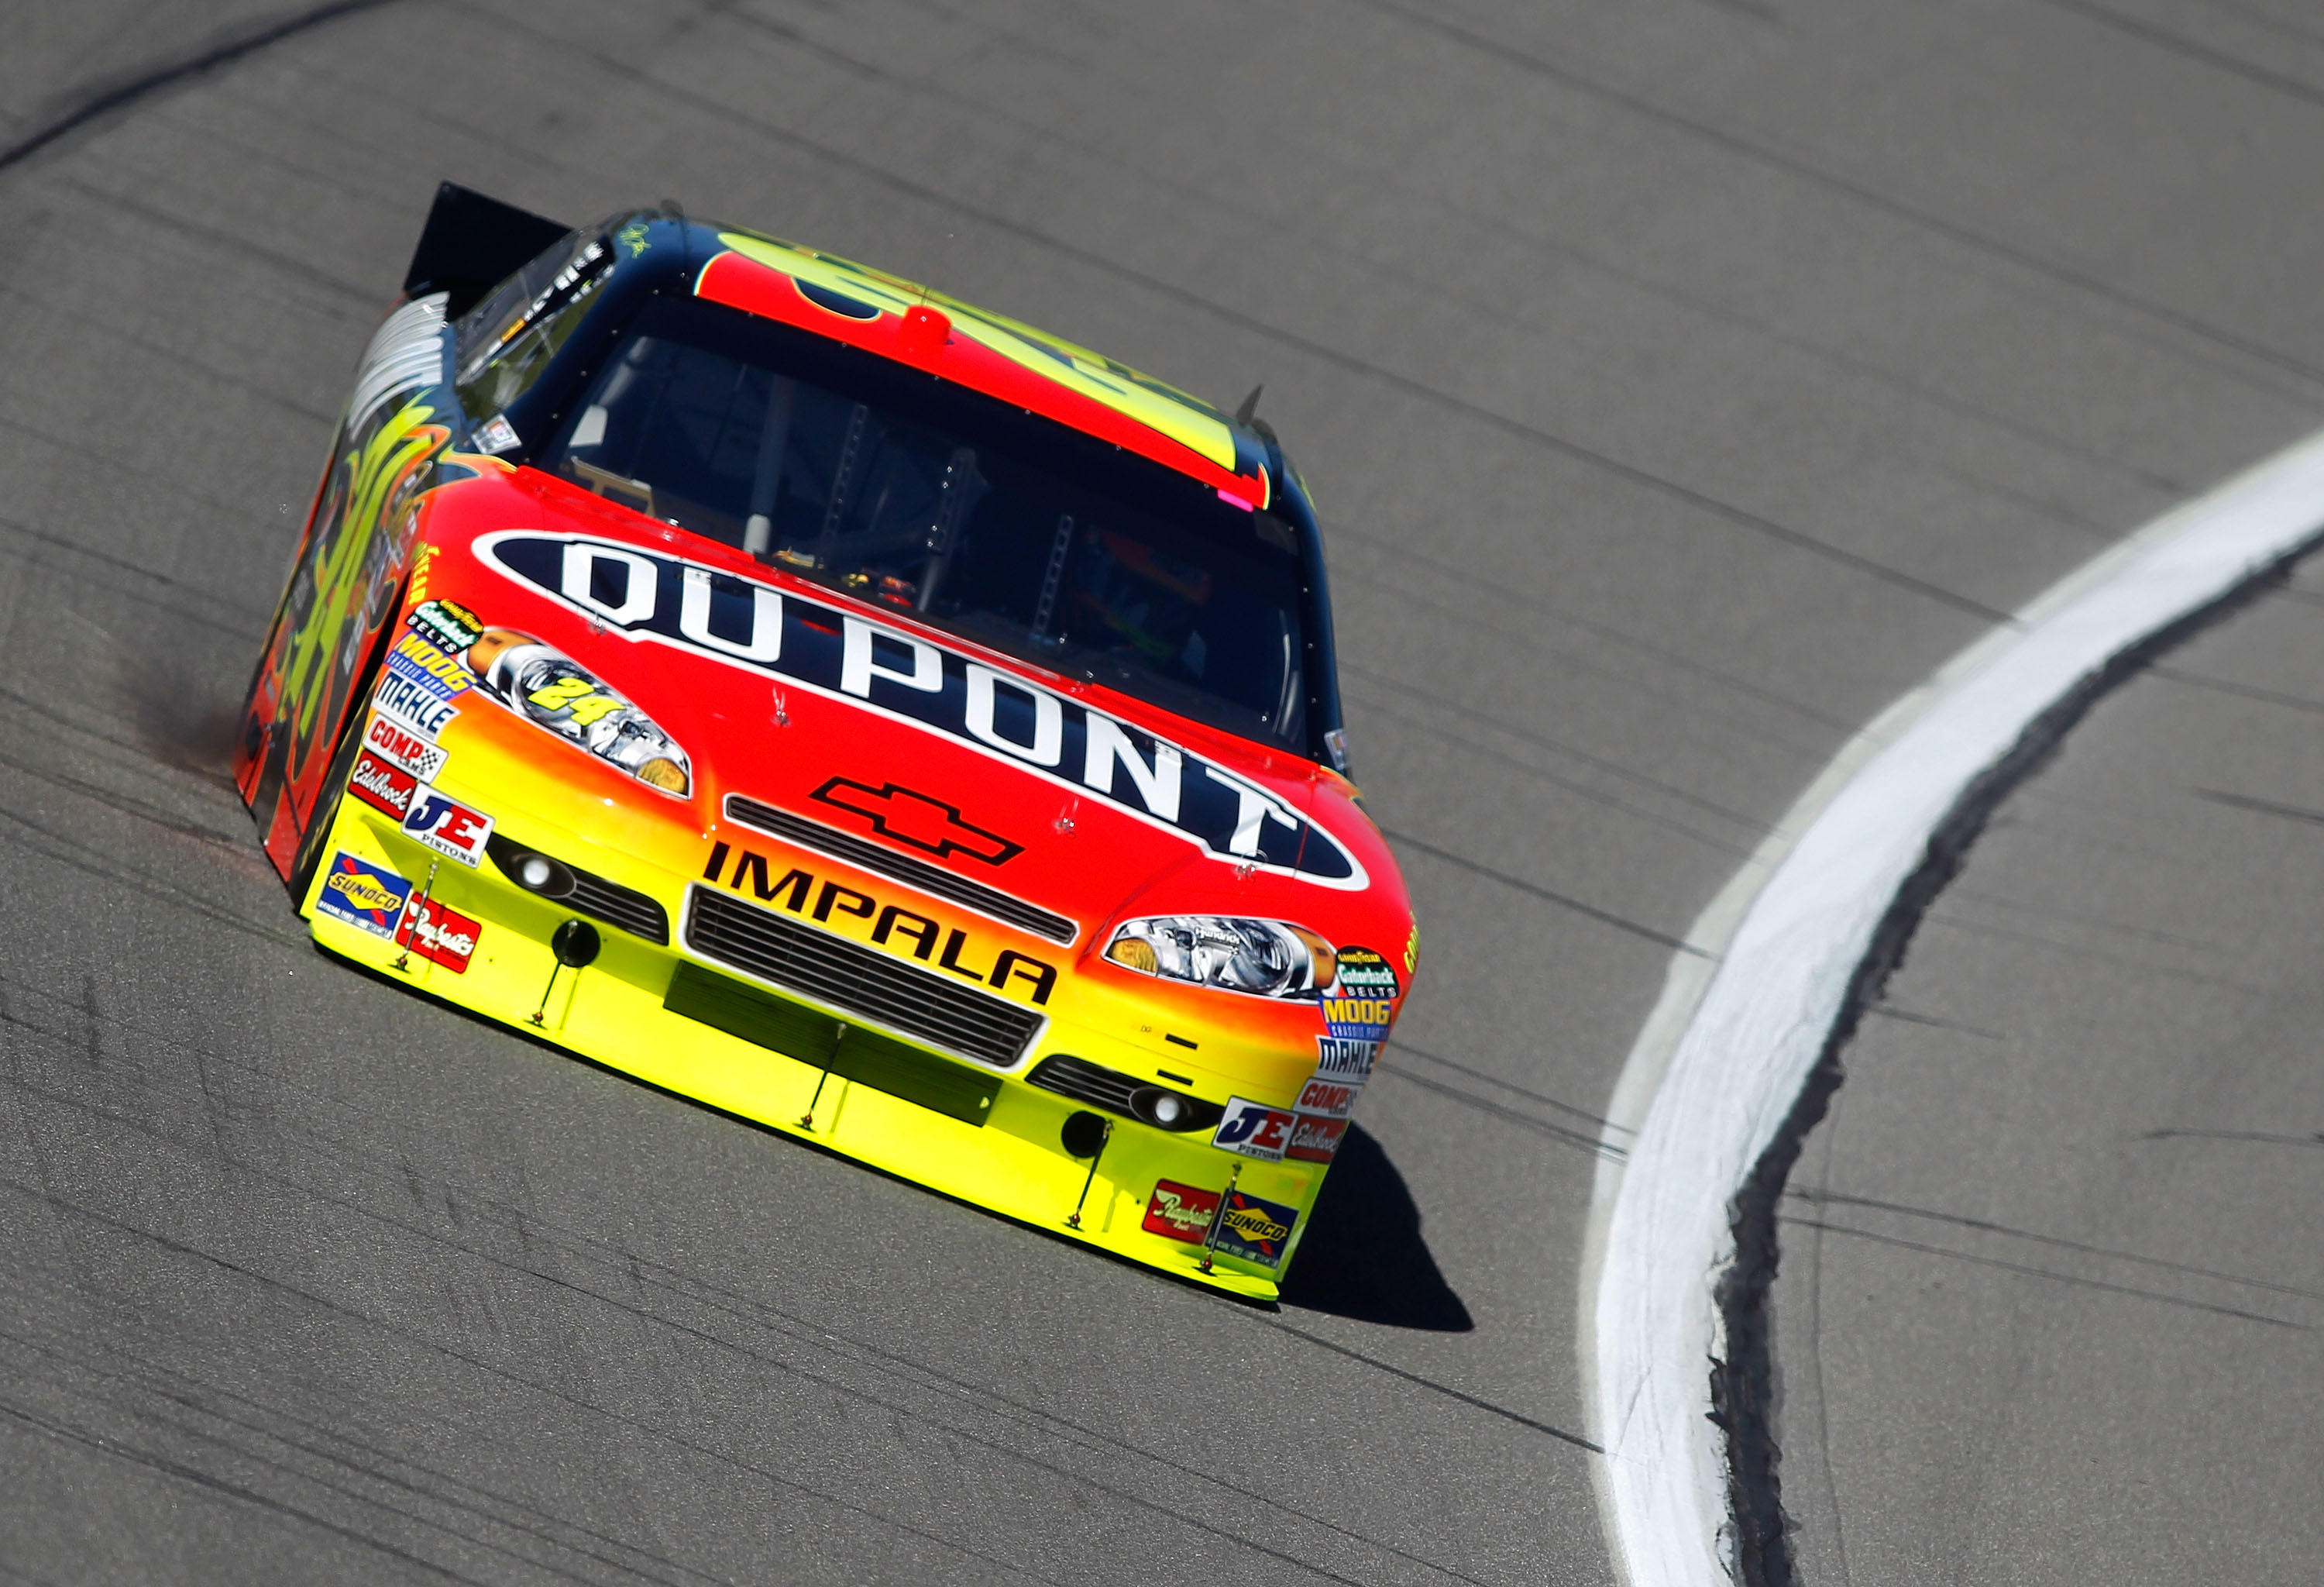 KANSAS CITY, KS - OCTOBER 01:  Jeff Gordon, driver of the #24 DuPont Chevrolet, practices for the NASCAR Sprint Cup Series Price Chopper 400 on October 1, 2010 in Kansas City, Kansas.  (Photo by Todd Warshaw/Getty Images)